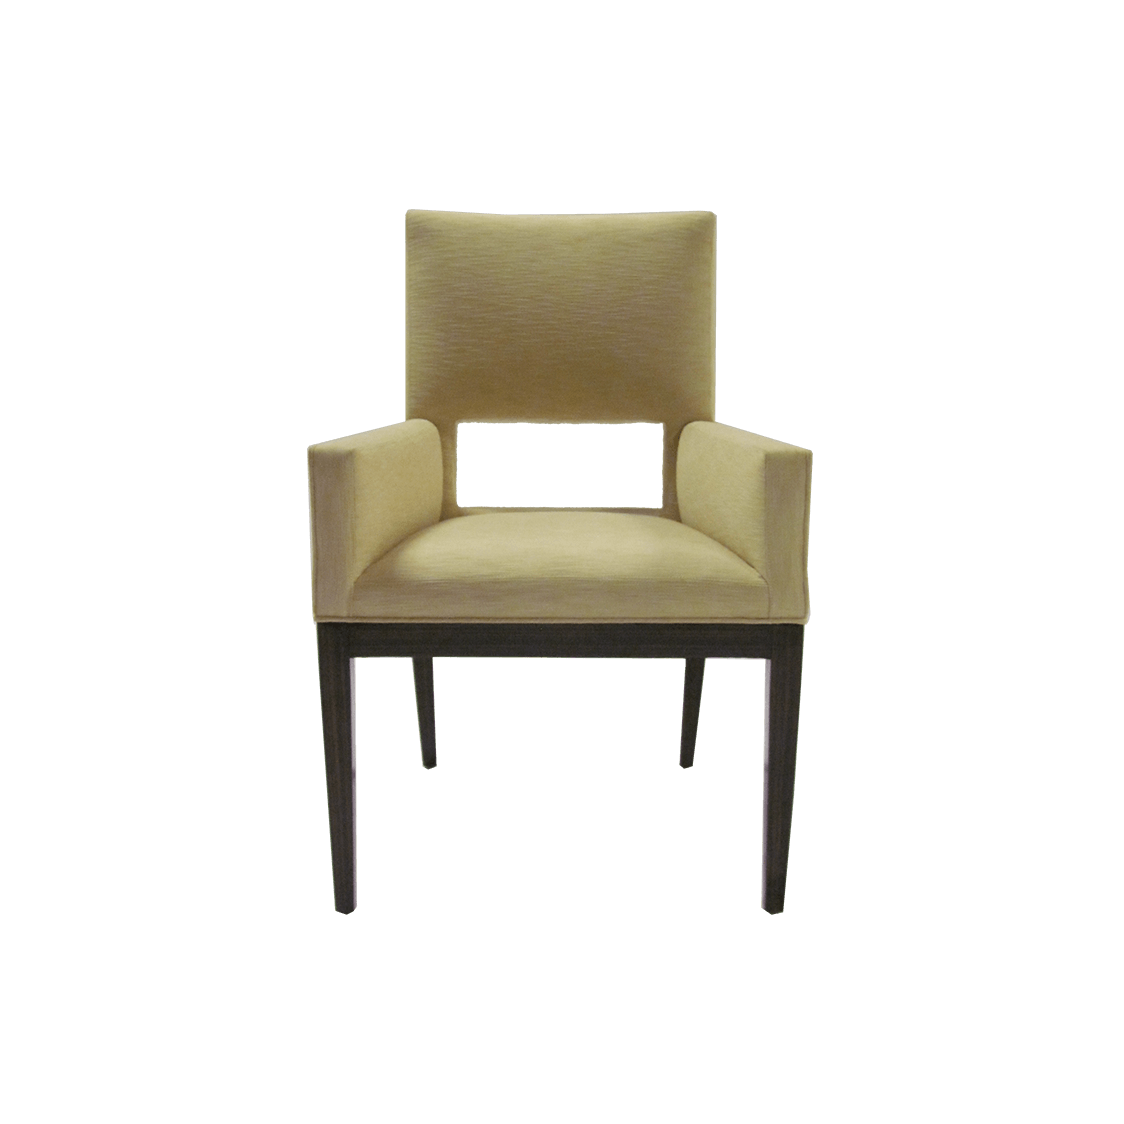 Artistic_Frame_Contemporary_Space_Chair